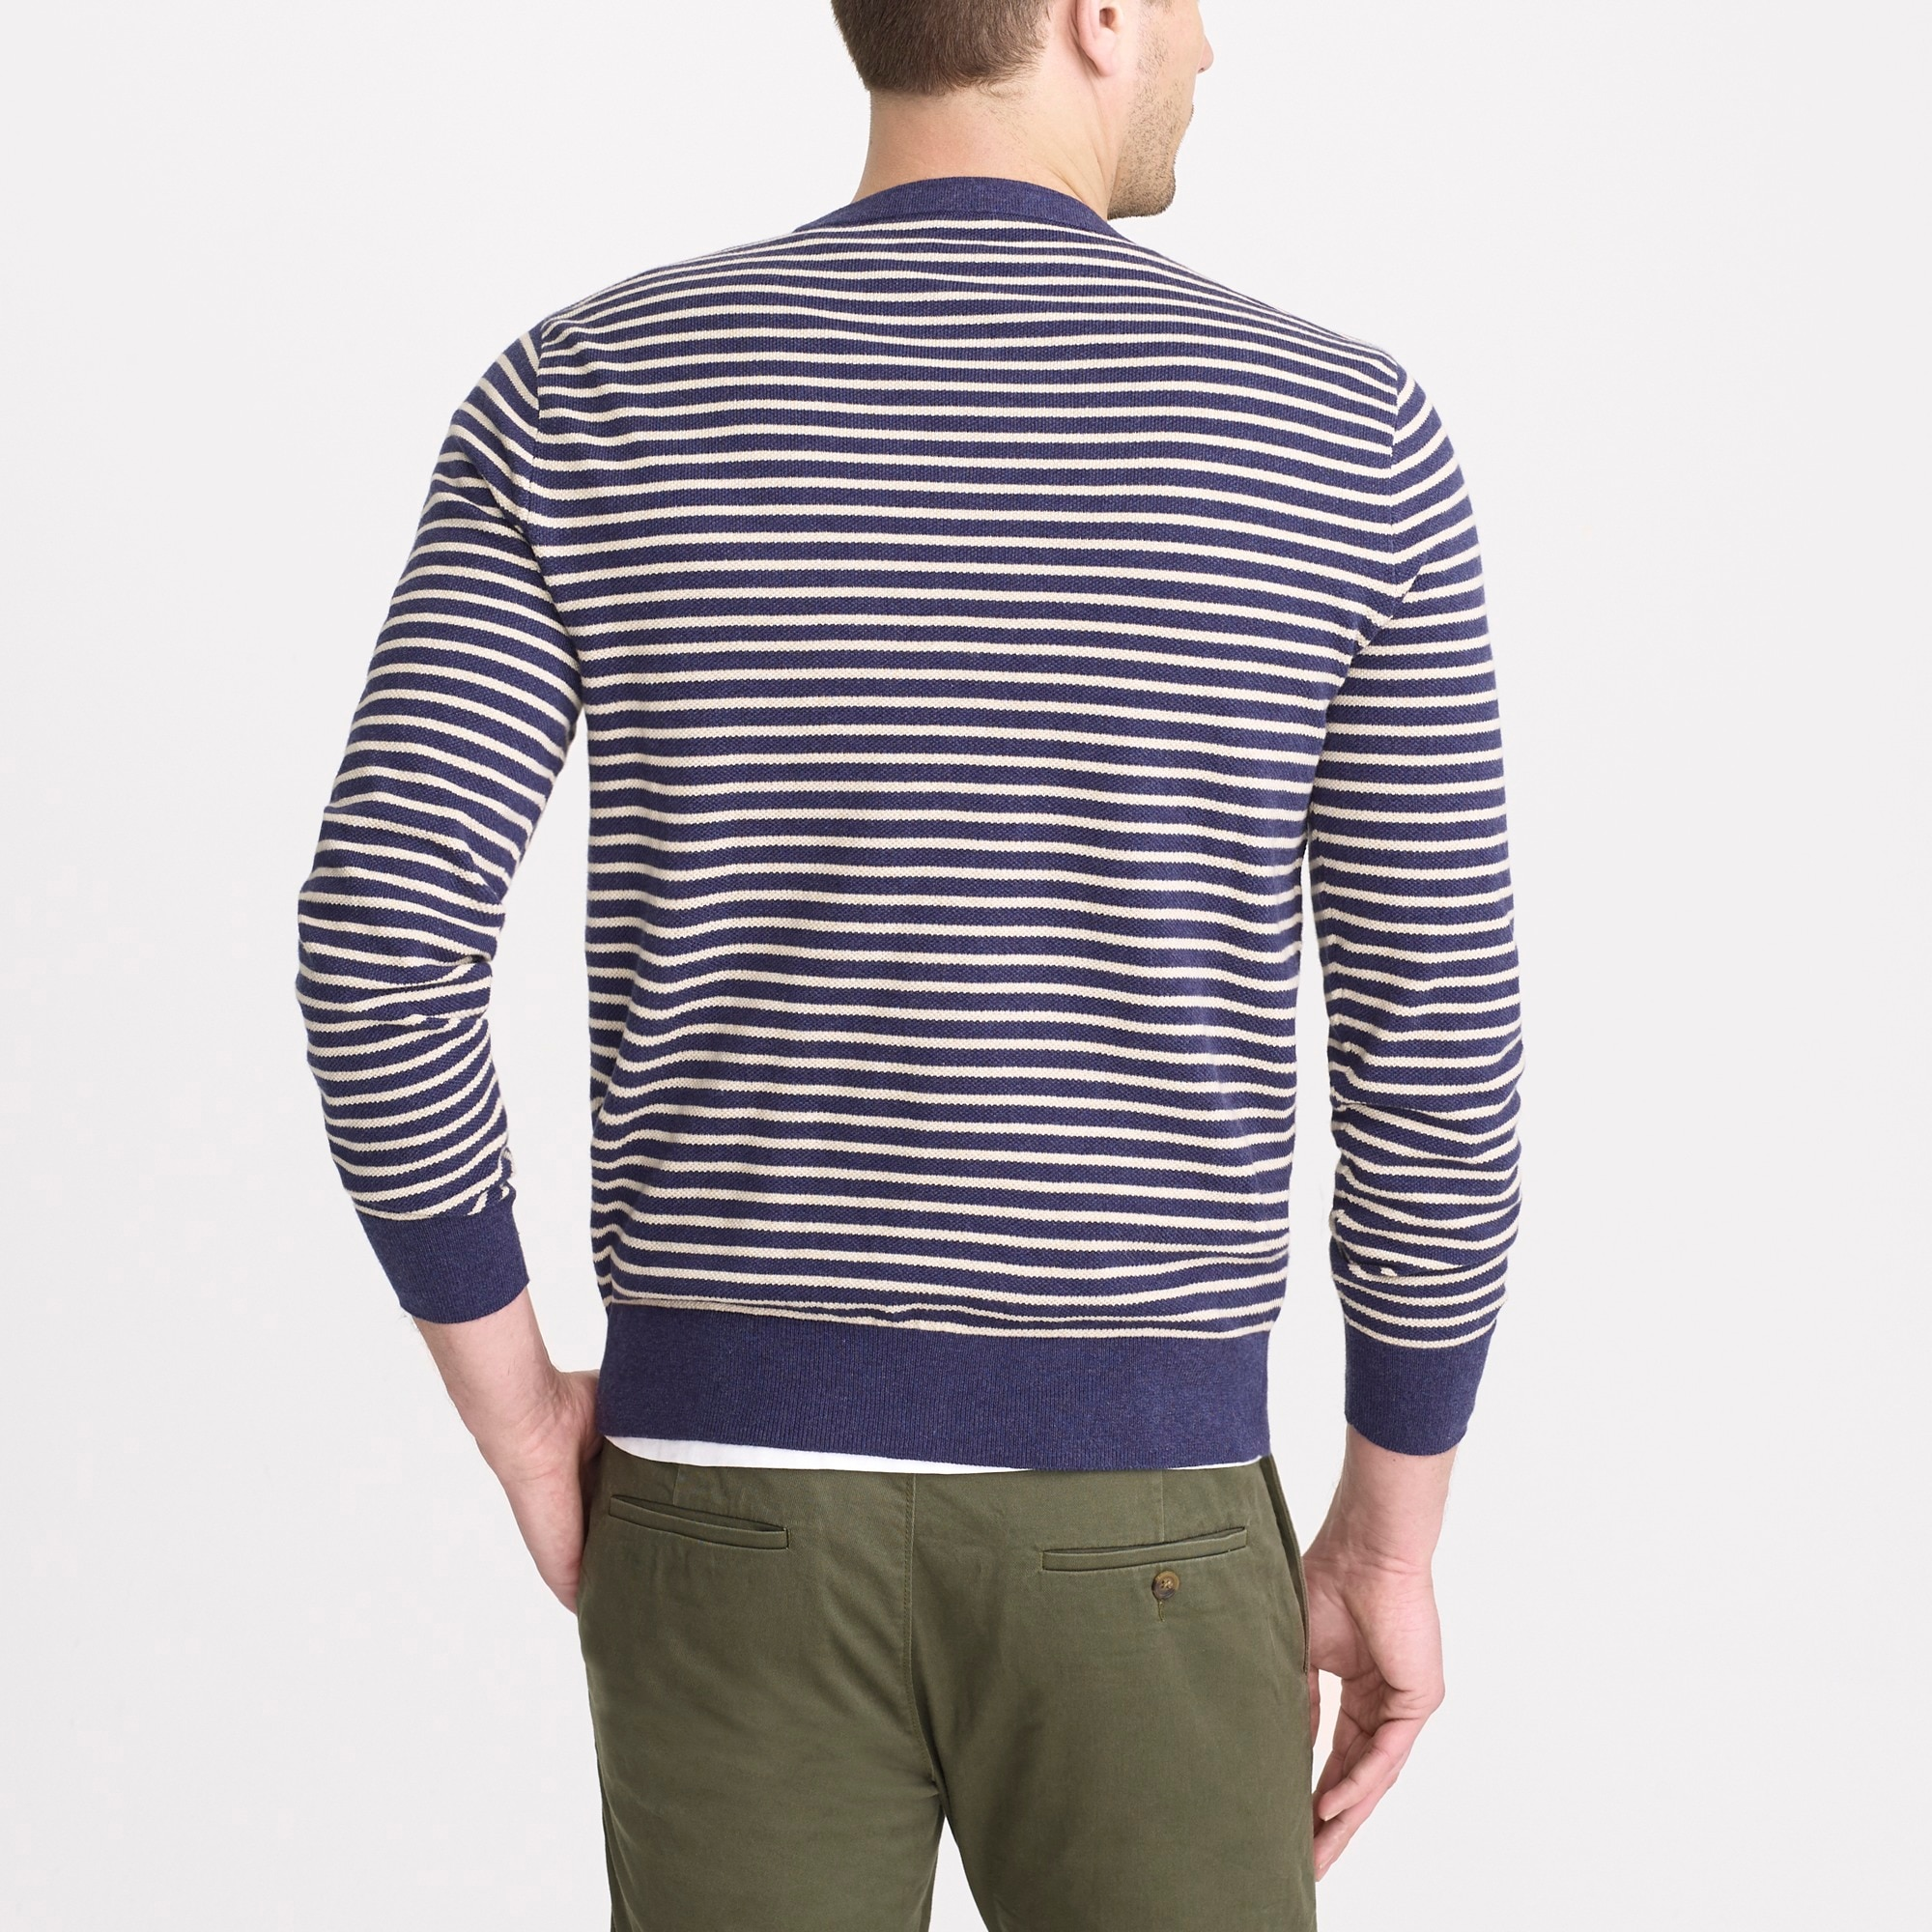 Image 3 for Slim-fit cotton piqué crewneck sweater in stripe